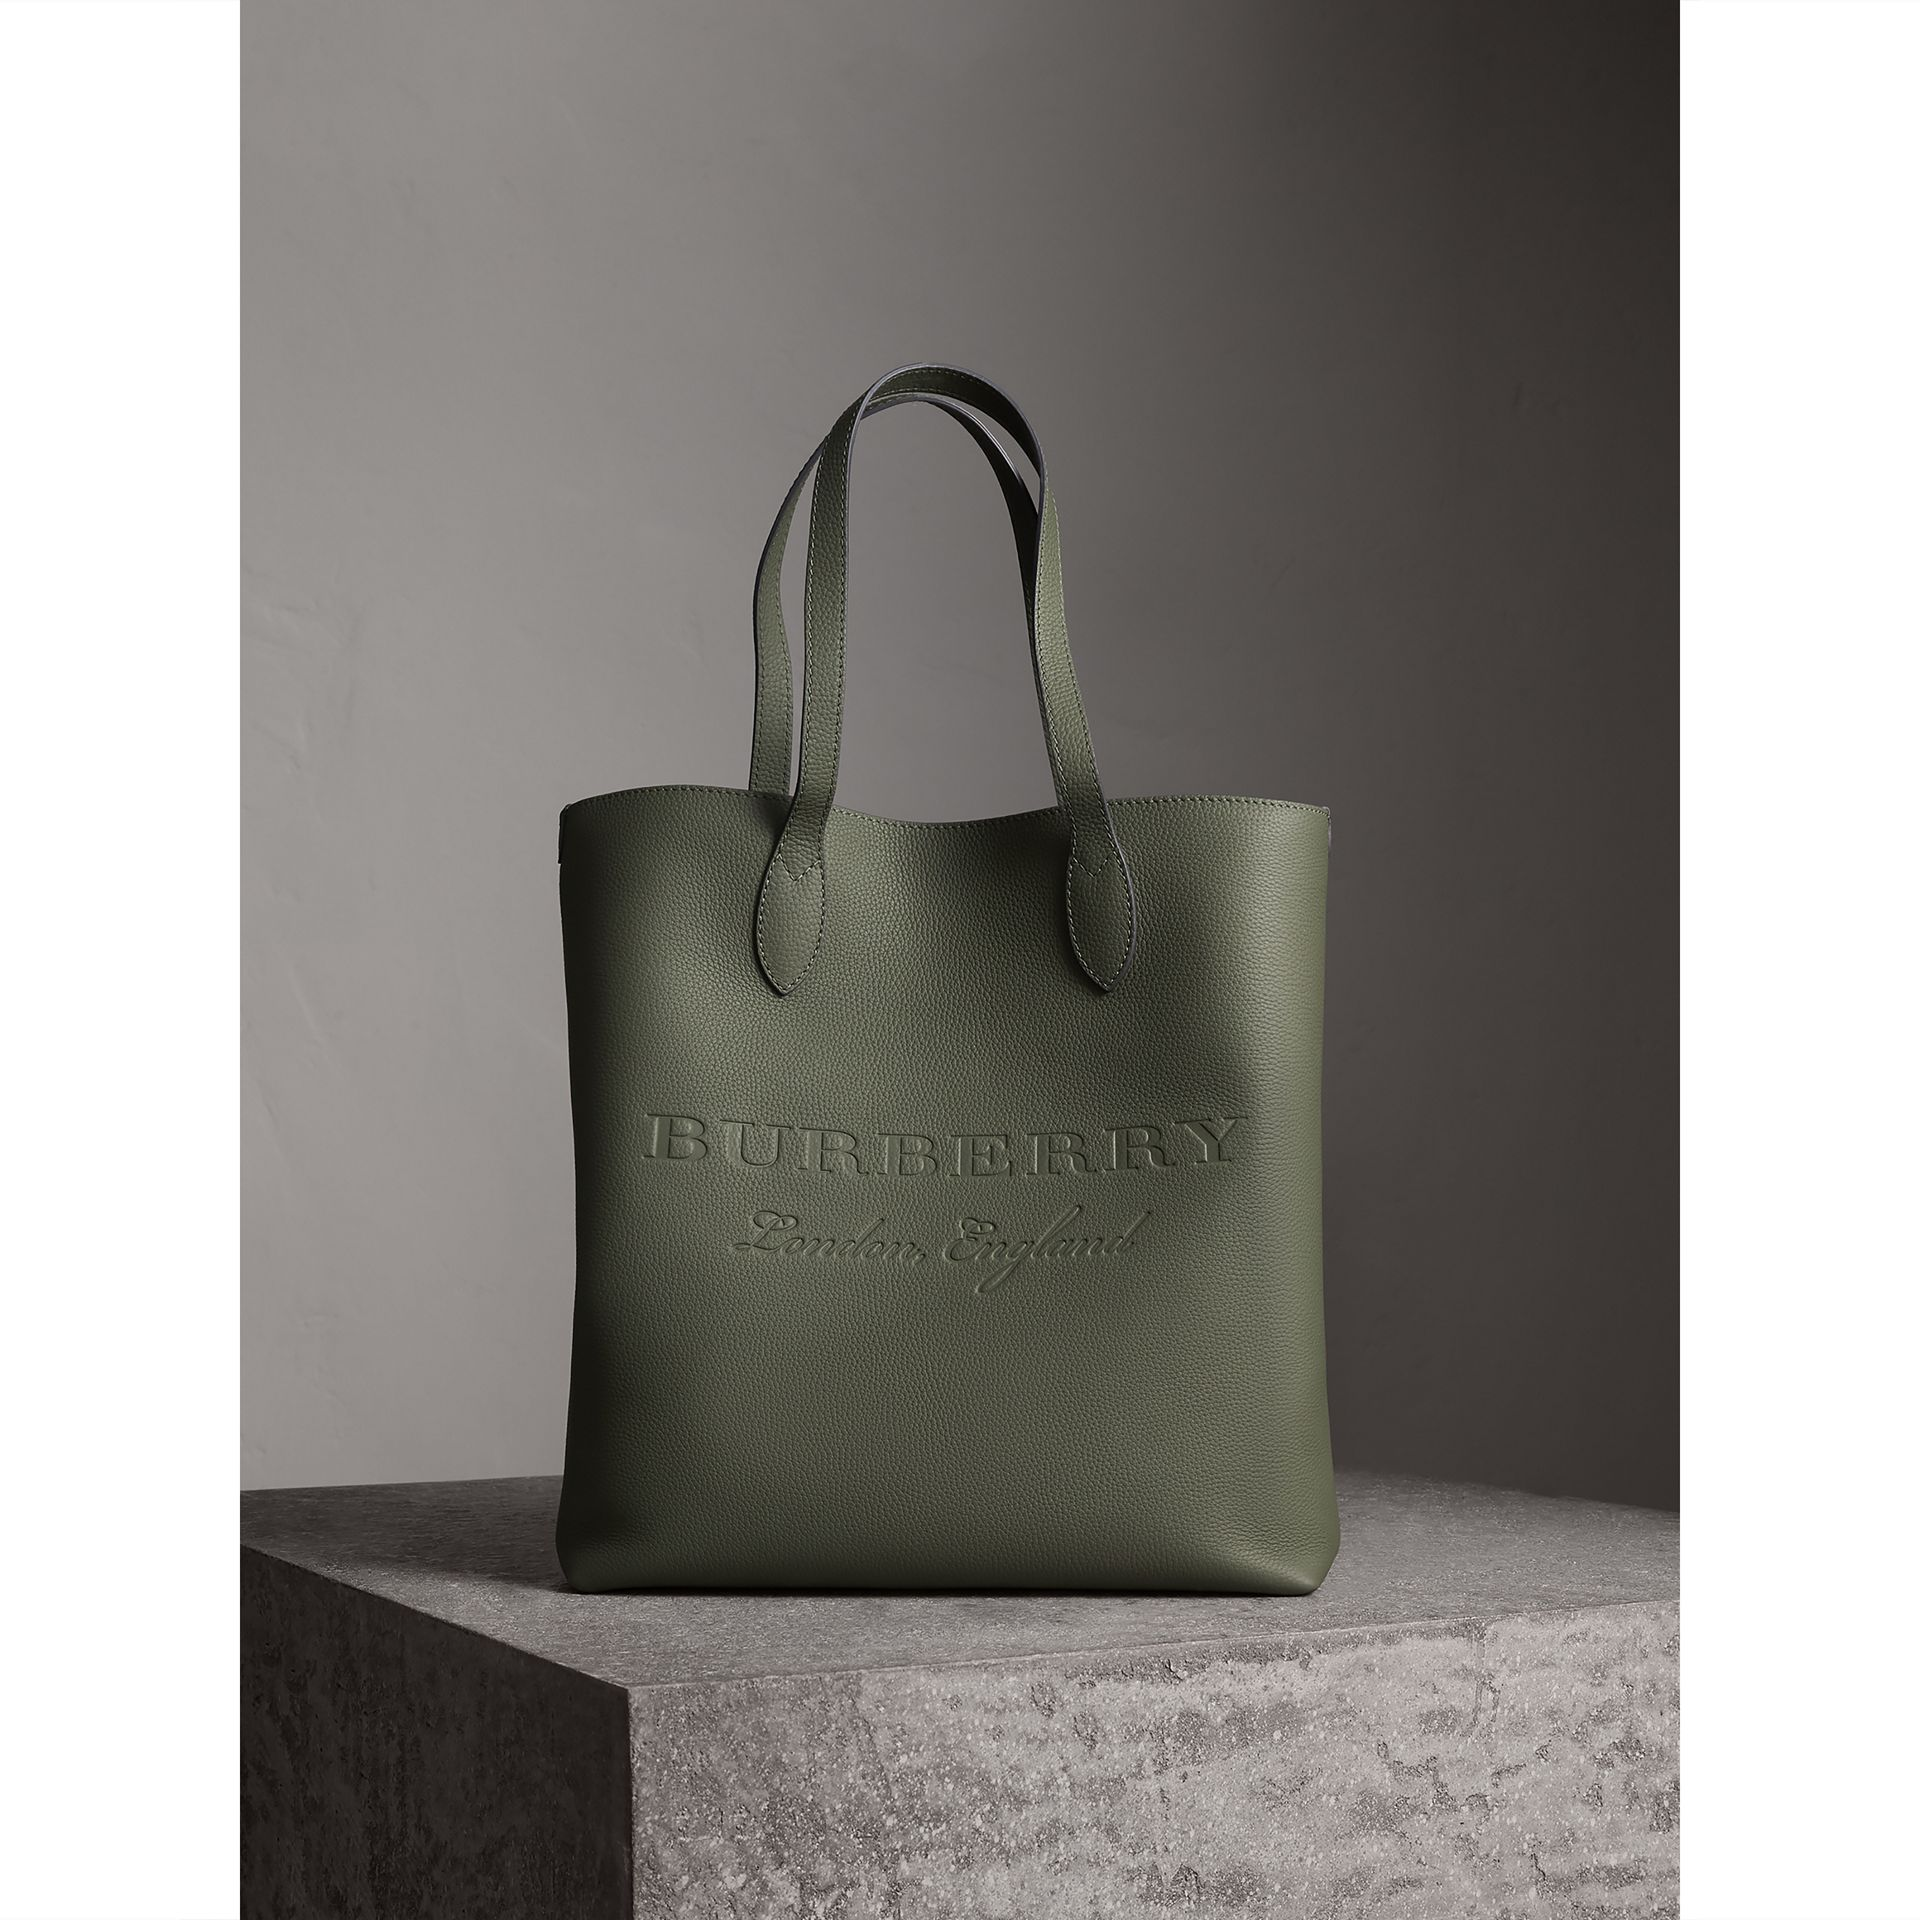 3aae90aa5e7 ... authorized site 57496 670bb Burberry Slate Green Medium Embossed  Leather Tote ...